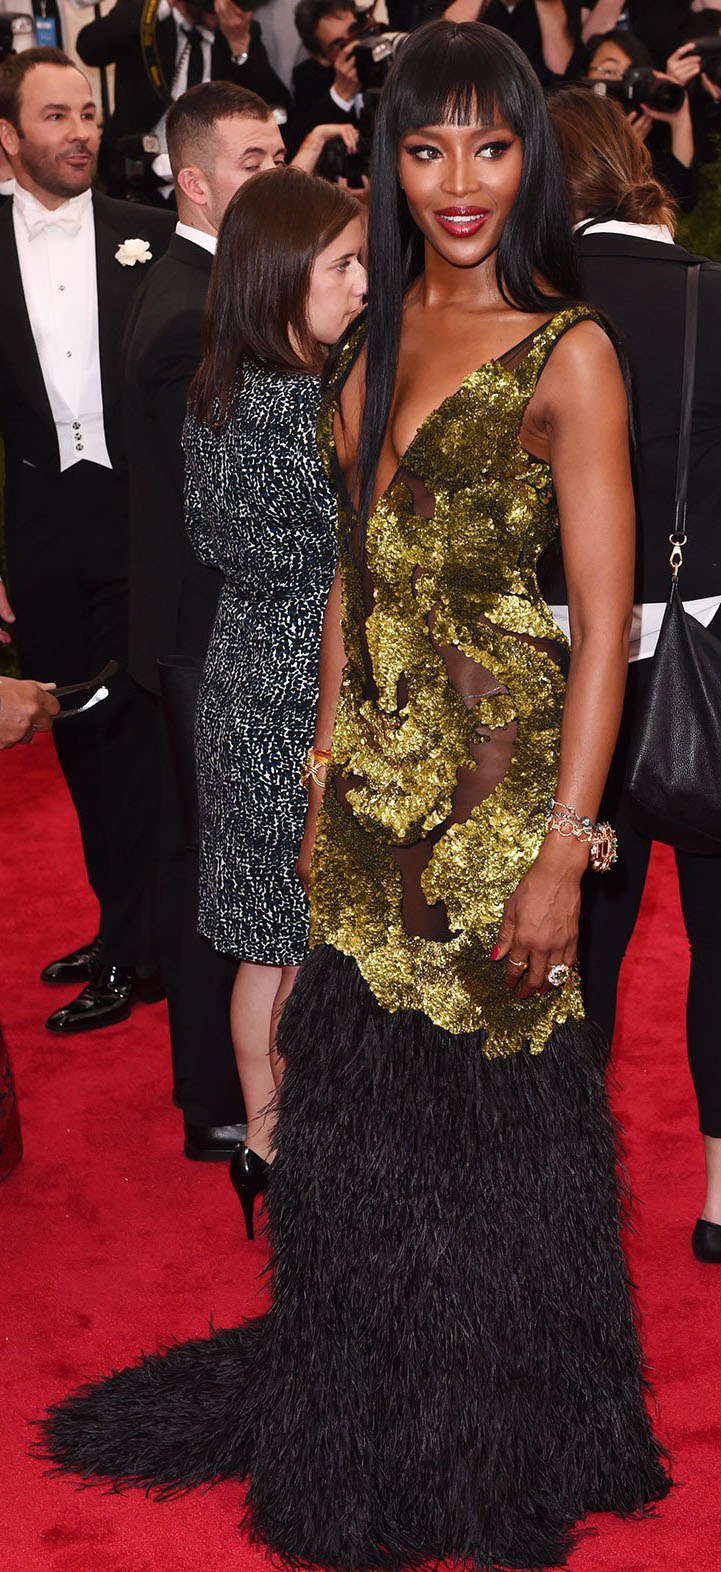 elegant-dramatic-style-type-naomicampbell-green-gown-dress-plunging-redcarpet-fringe-model.jpg